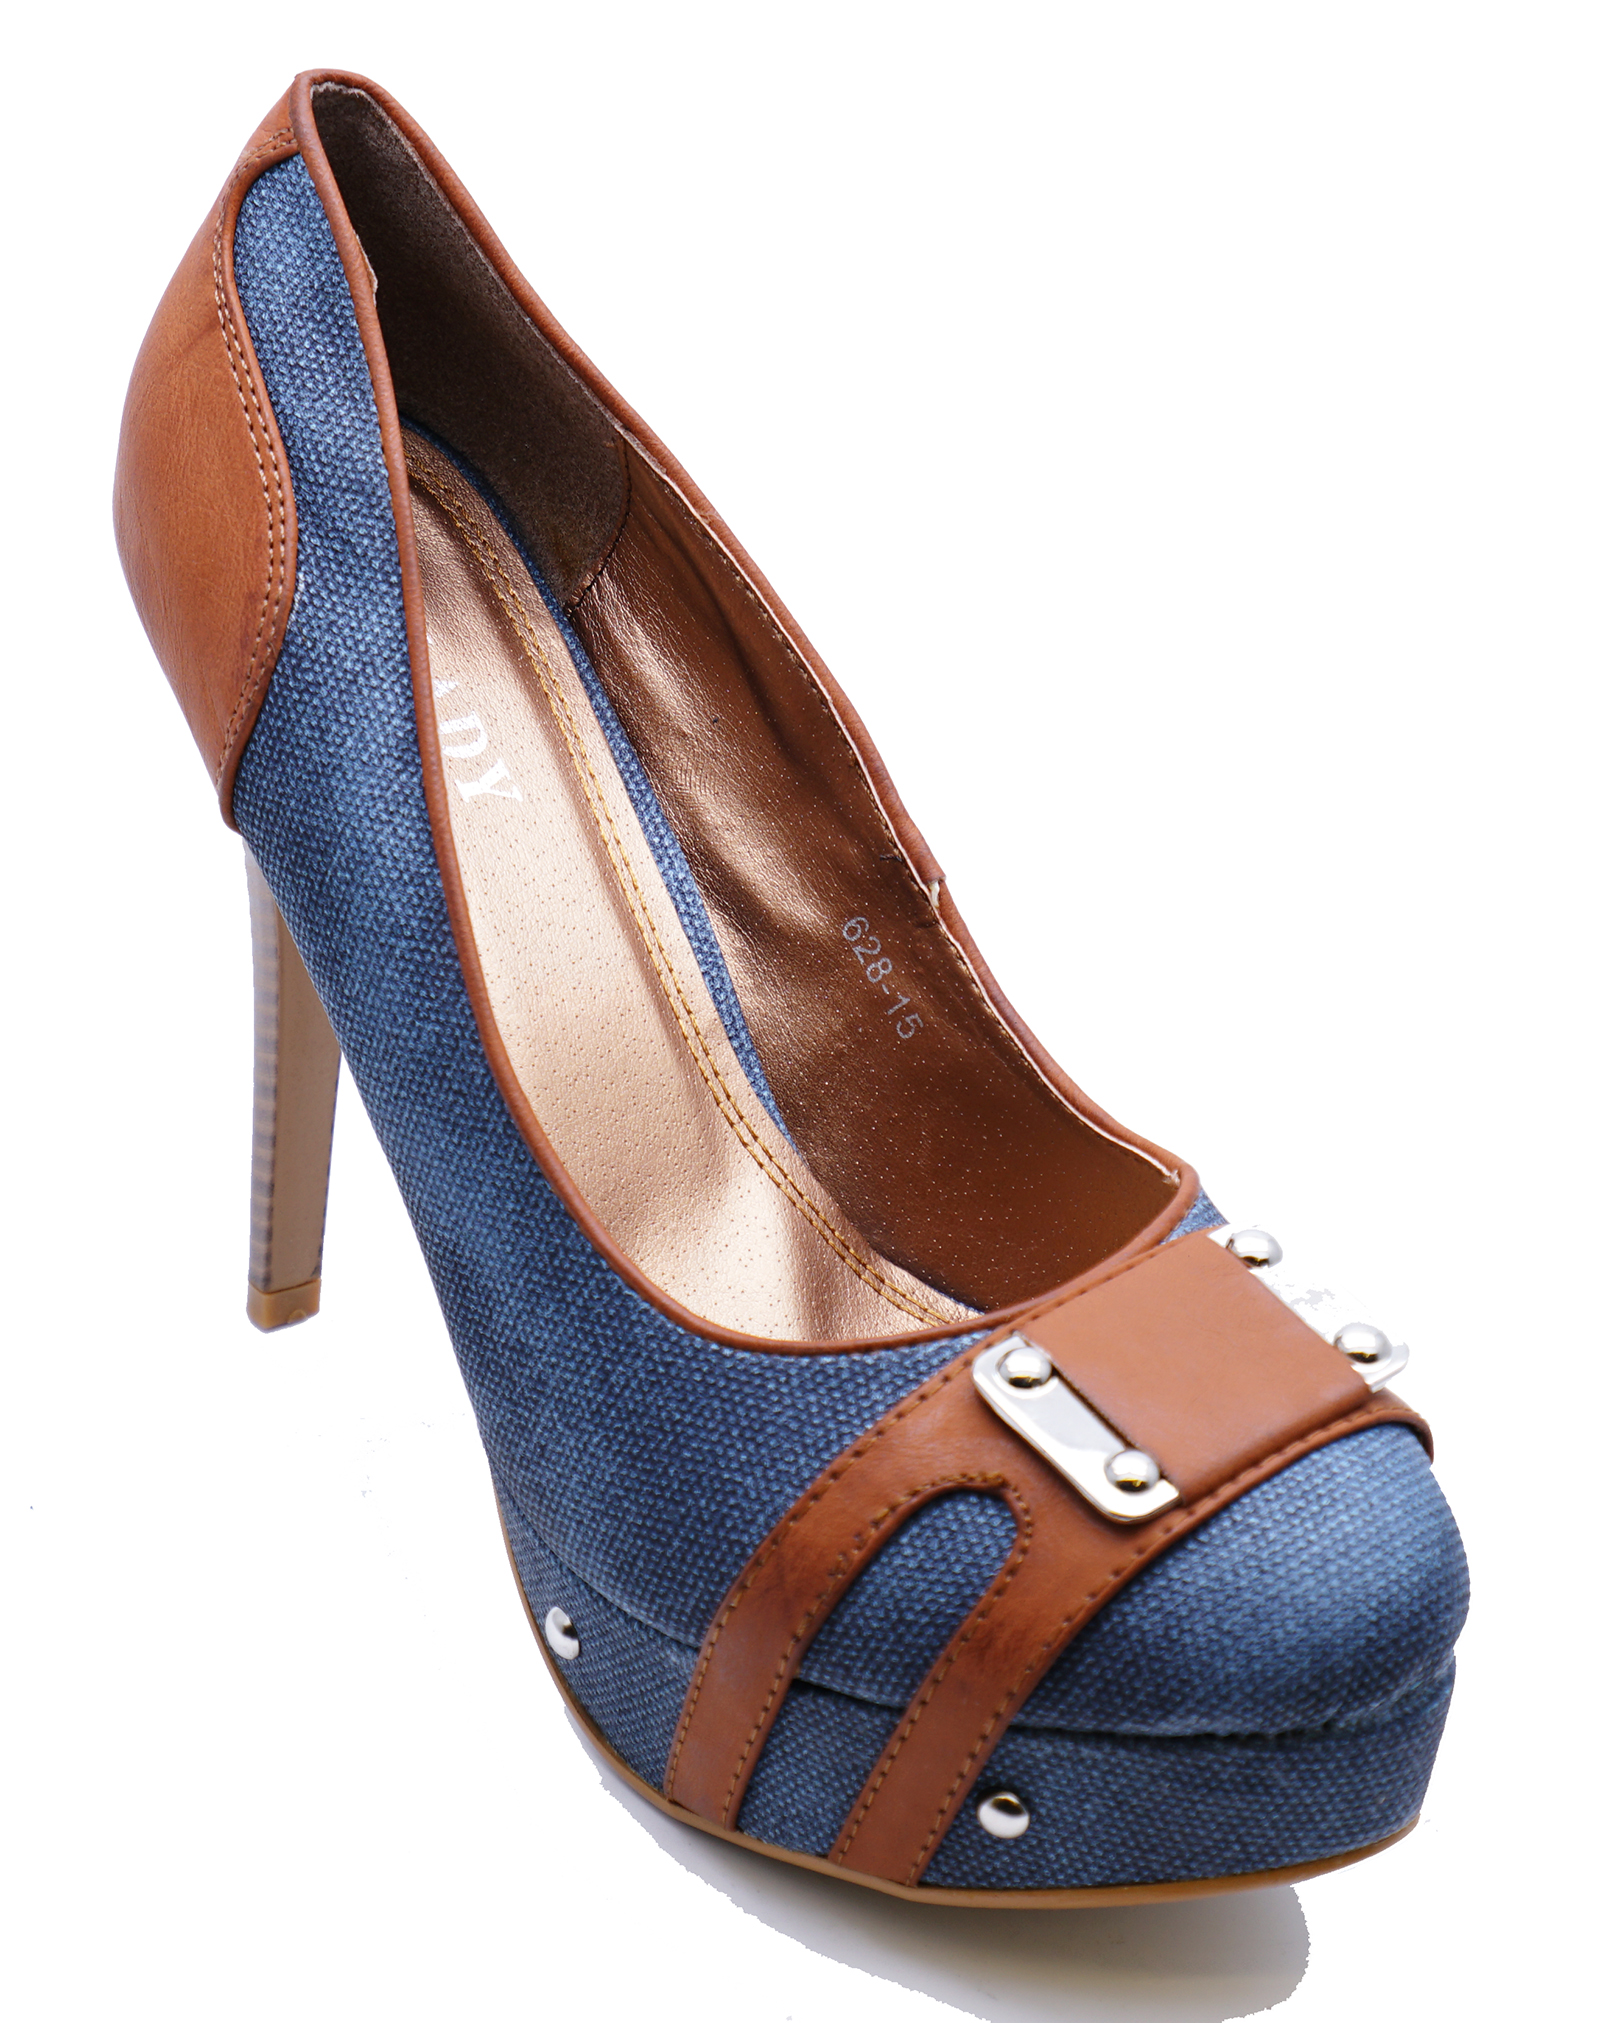 LADIES DENIM STILETTO ELEGANT HIGH-HEEL SLIP-ON PLATFORM COURT SHOES SIZES 3-8